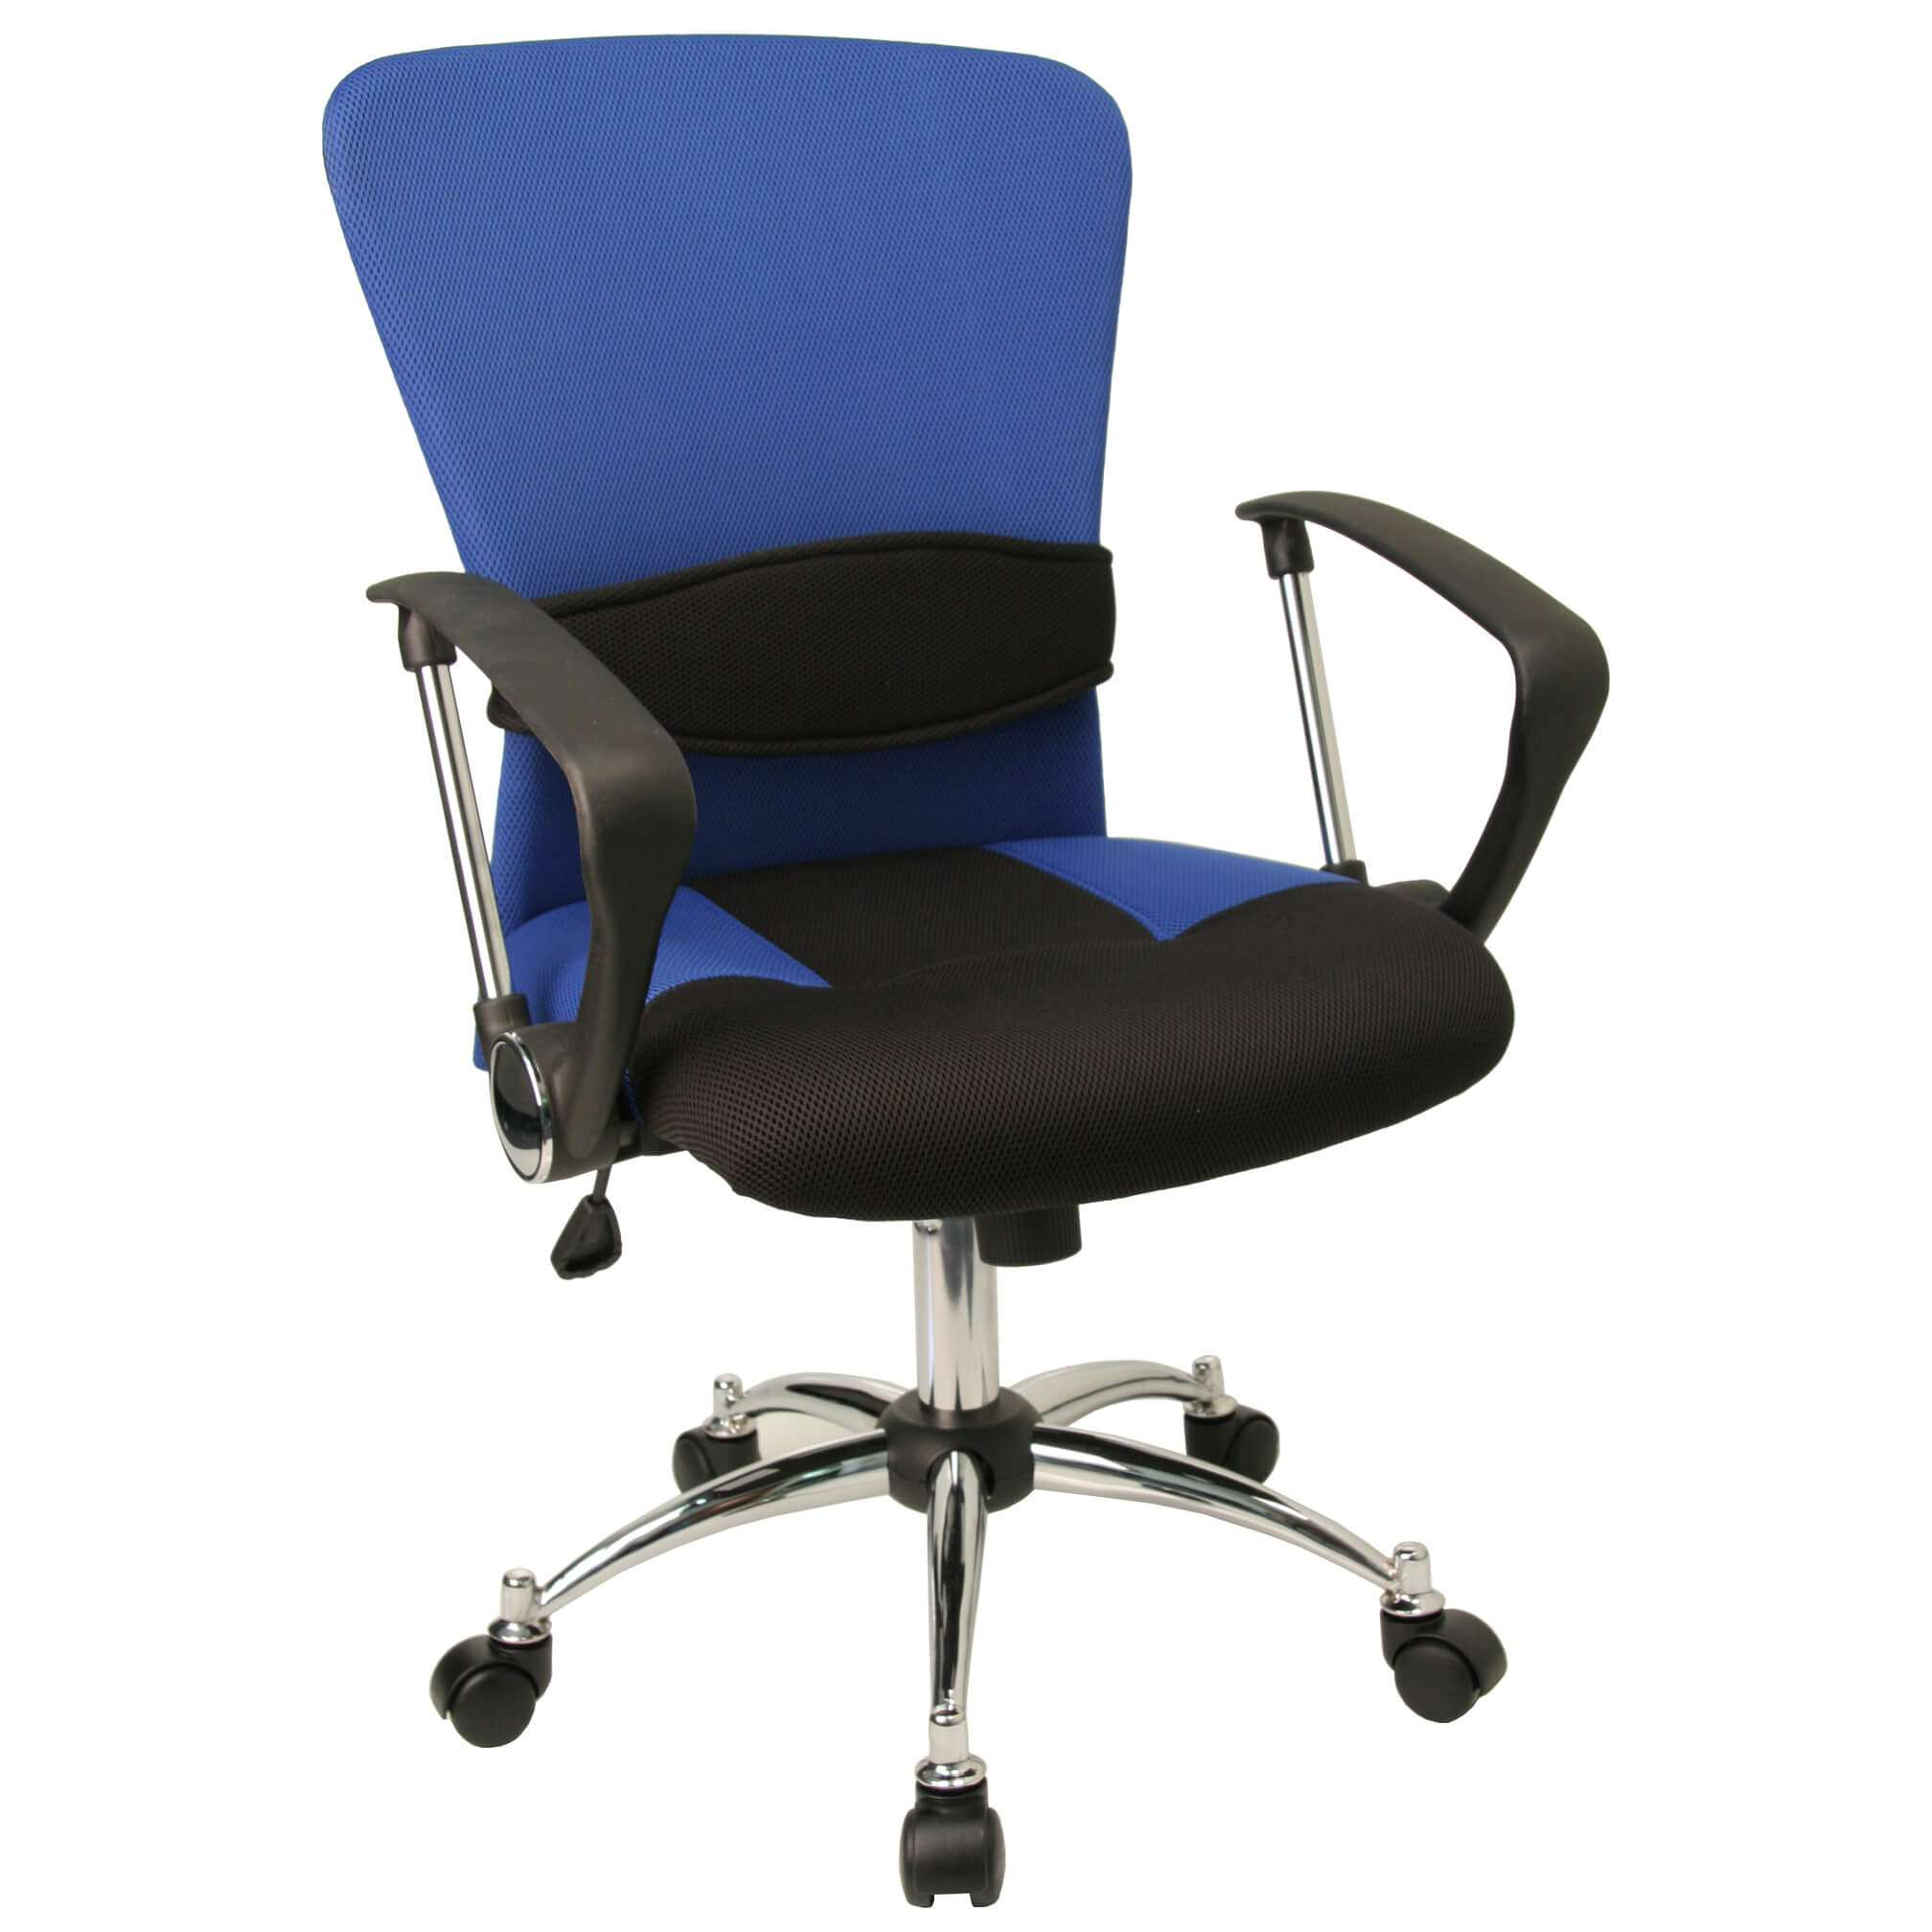 Back Support Chair Night Star Lumbar Support Office Chair